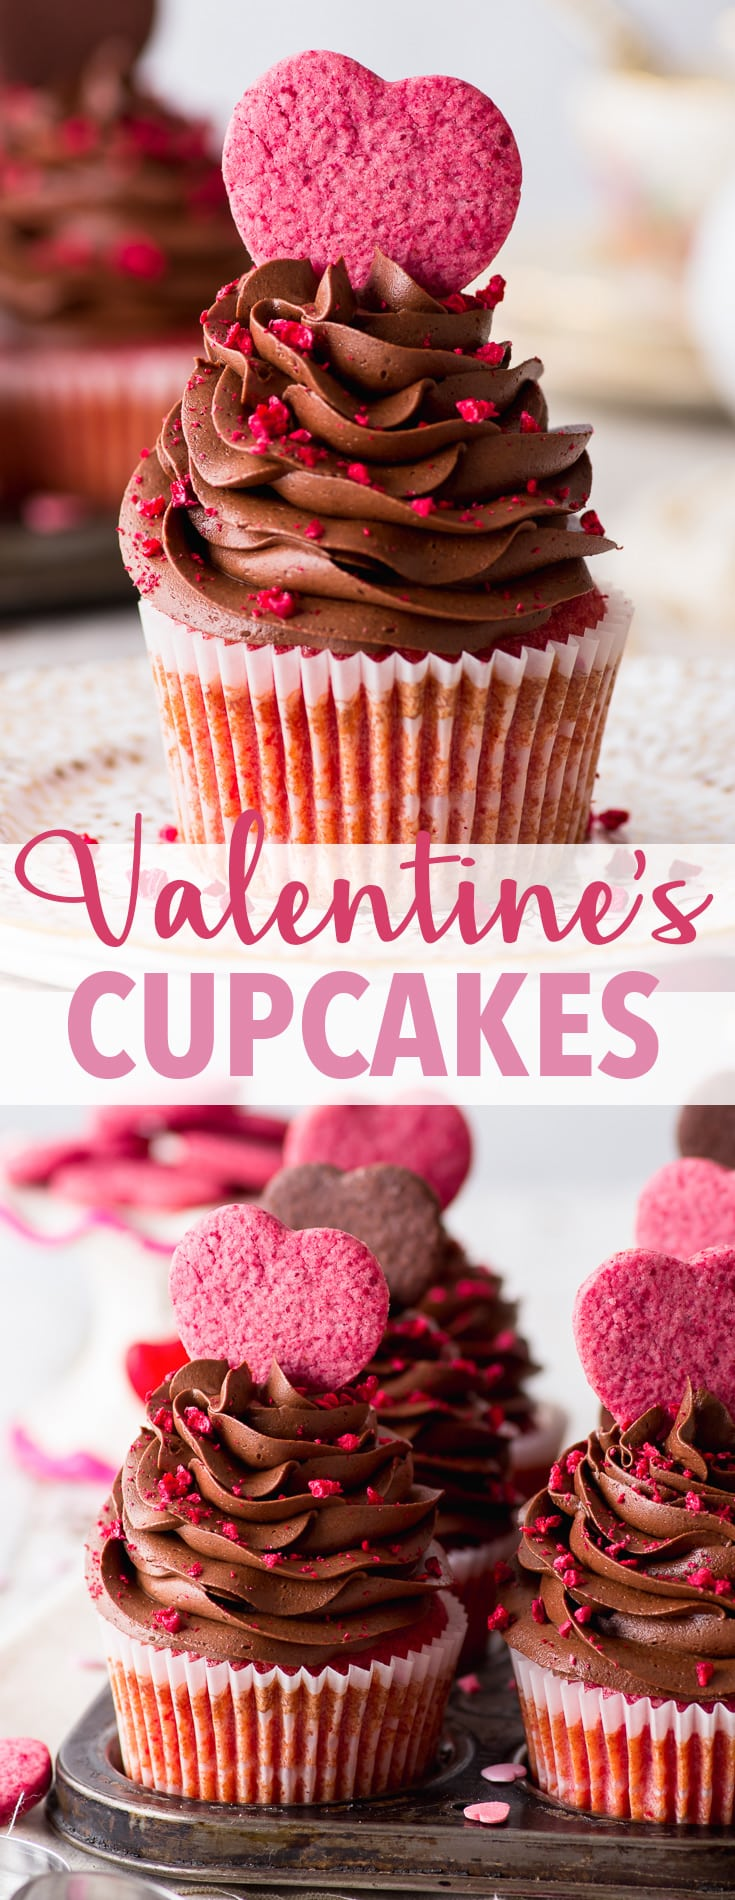 Raspberry & Chocolate Valentine's Cupcakes (Gluten Free) - Beautiful, delicious and full of heart – these raspberry & chocolate Valentine's cupcakes are the perfect way to share your love. With moist raspberry cupcakes, a raspberry jam centre, and topped with a luxurious chocolate buttercream frosting. Plus, they're easy to make! Chocolate cupcakes recipe. Valentines Day desserts. Valentines Day recipes. Gluten free desserts. Gluten free cupcakes. #valentinesday #cupcakes